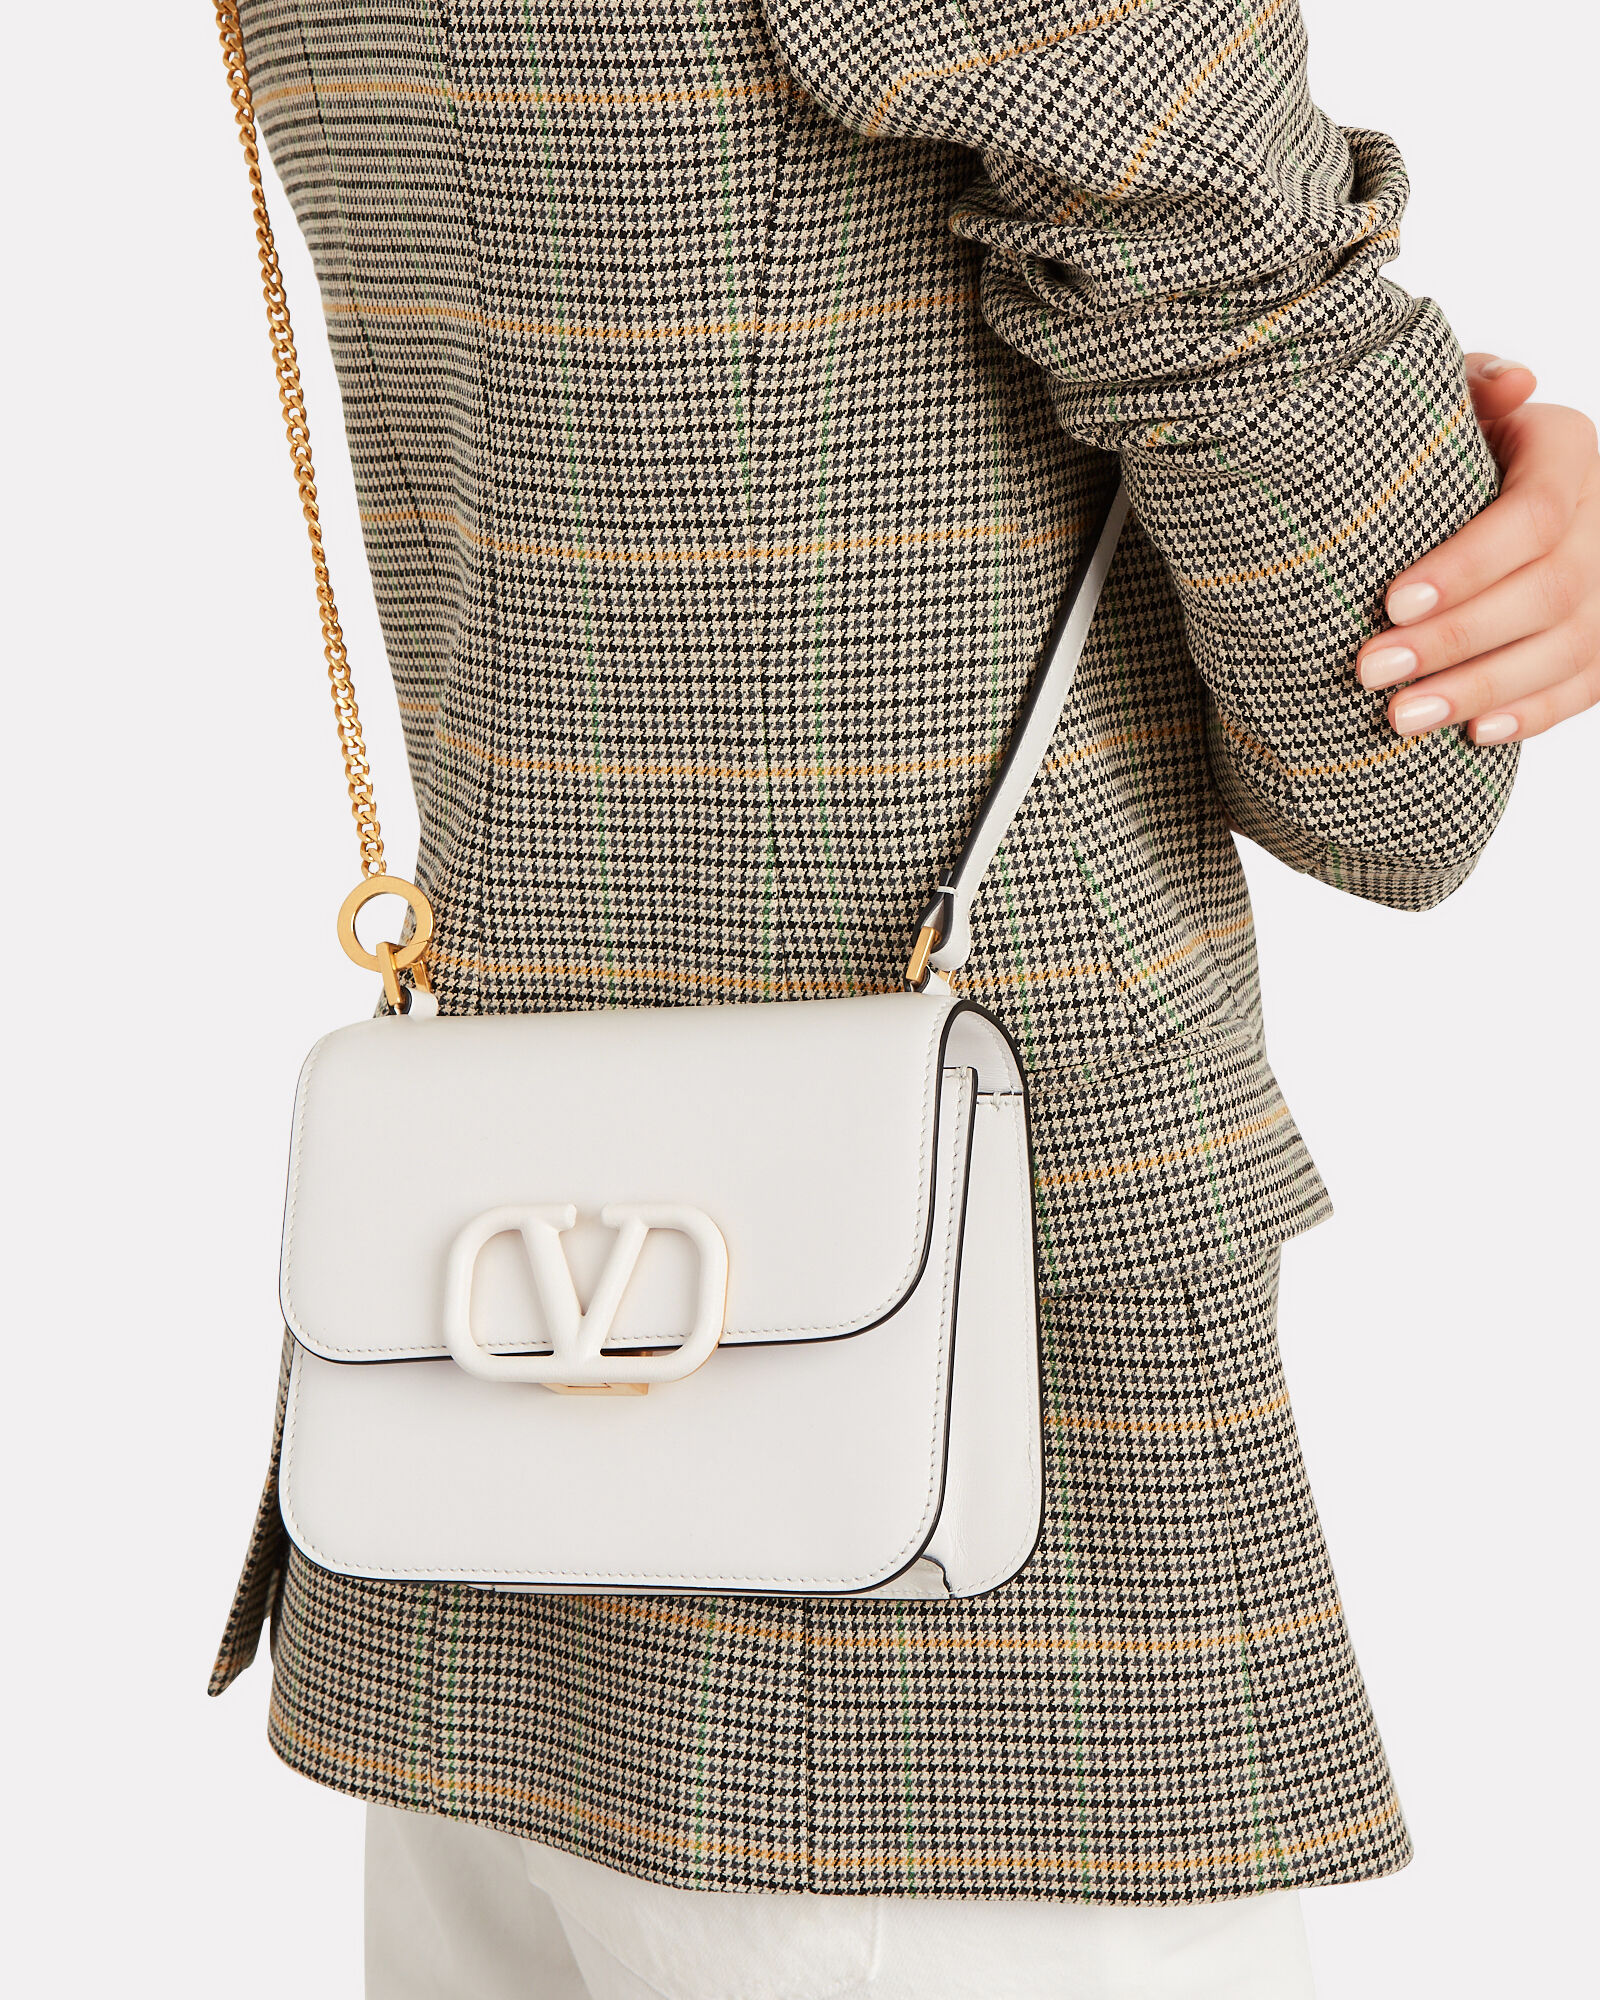 VSling Small Leather Shoulder Bag, ALABASTER, hi-res